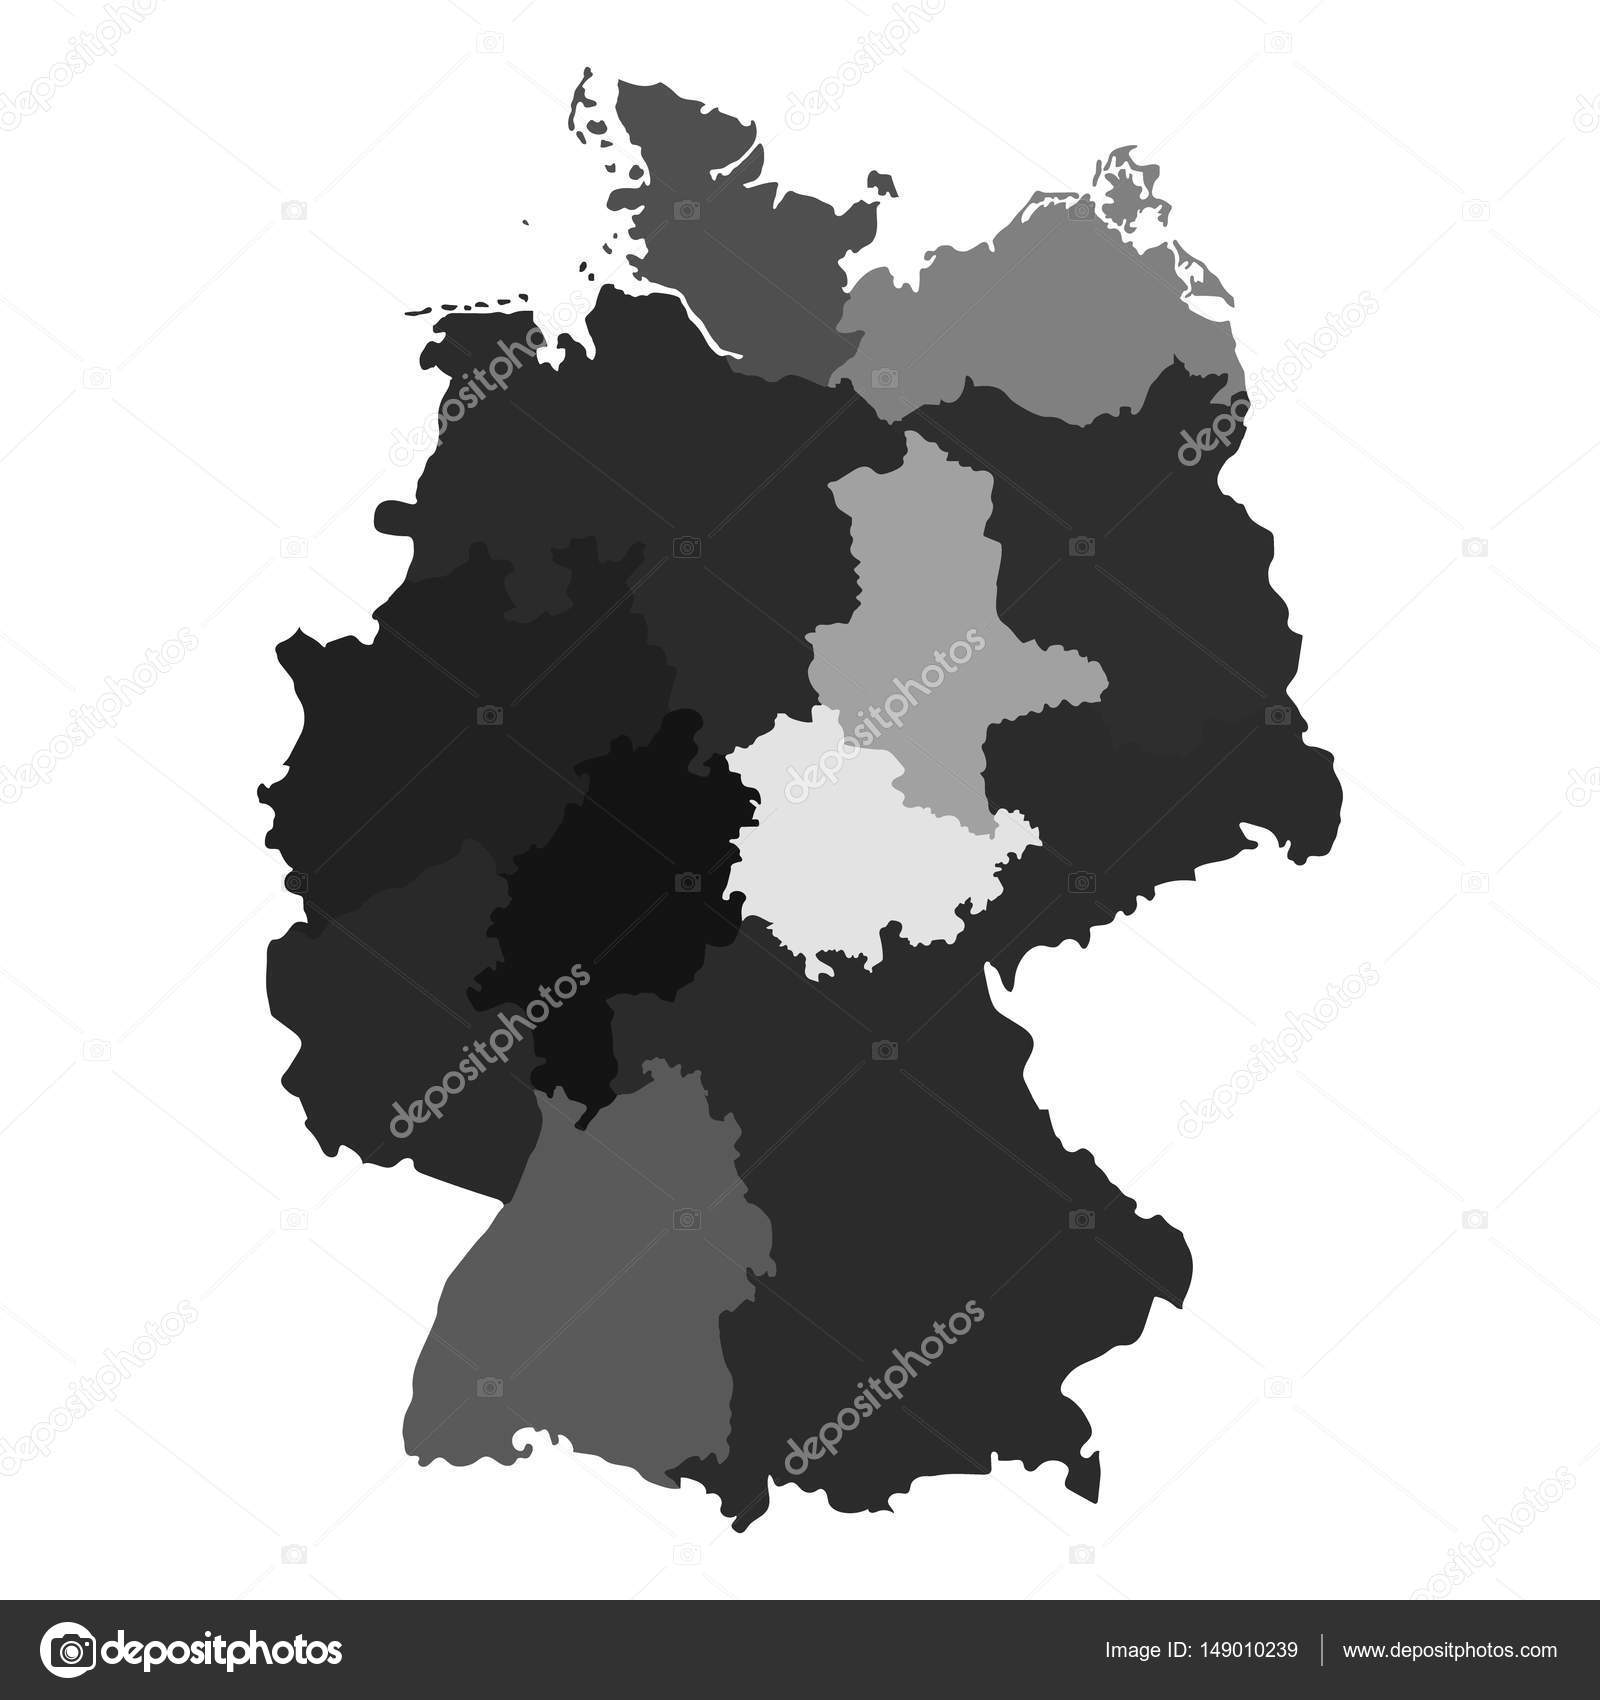 Map Of Germany Divided.Germany Map Divided On Regions For Infographic Stock Vector